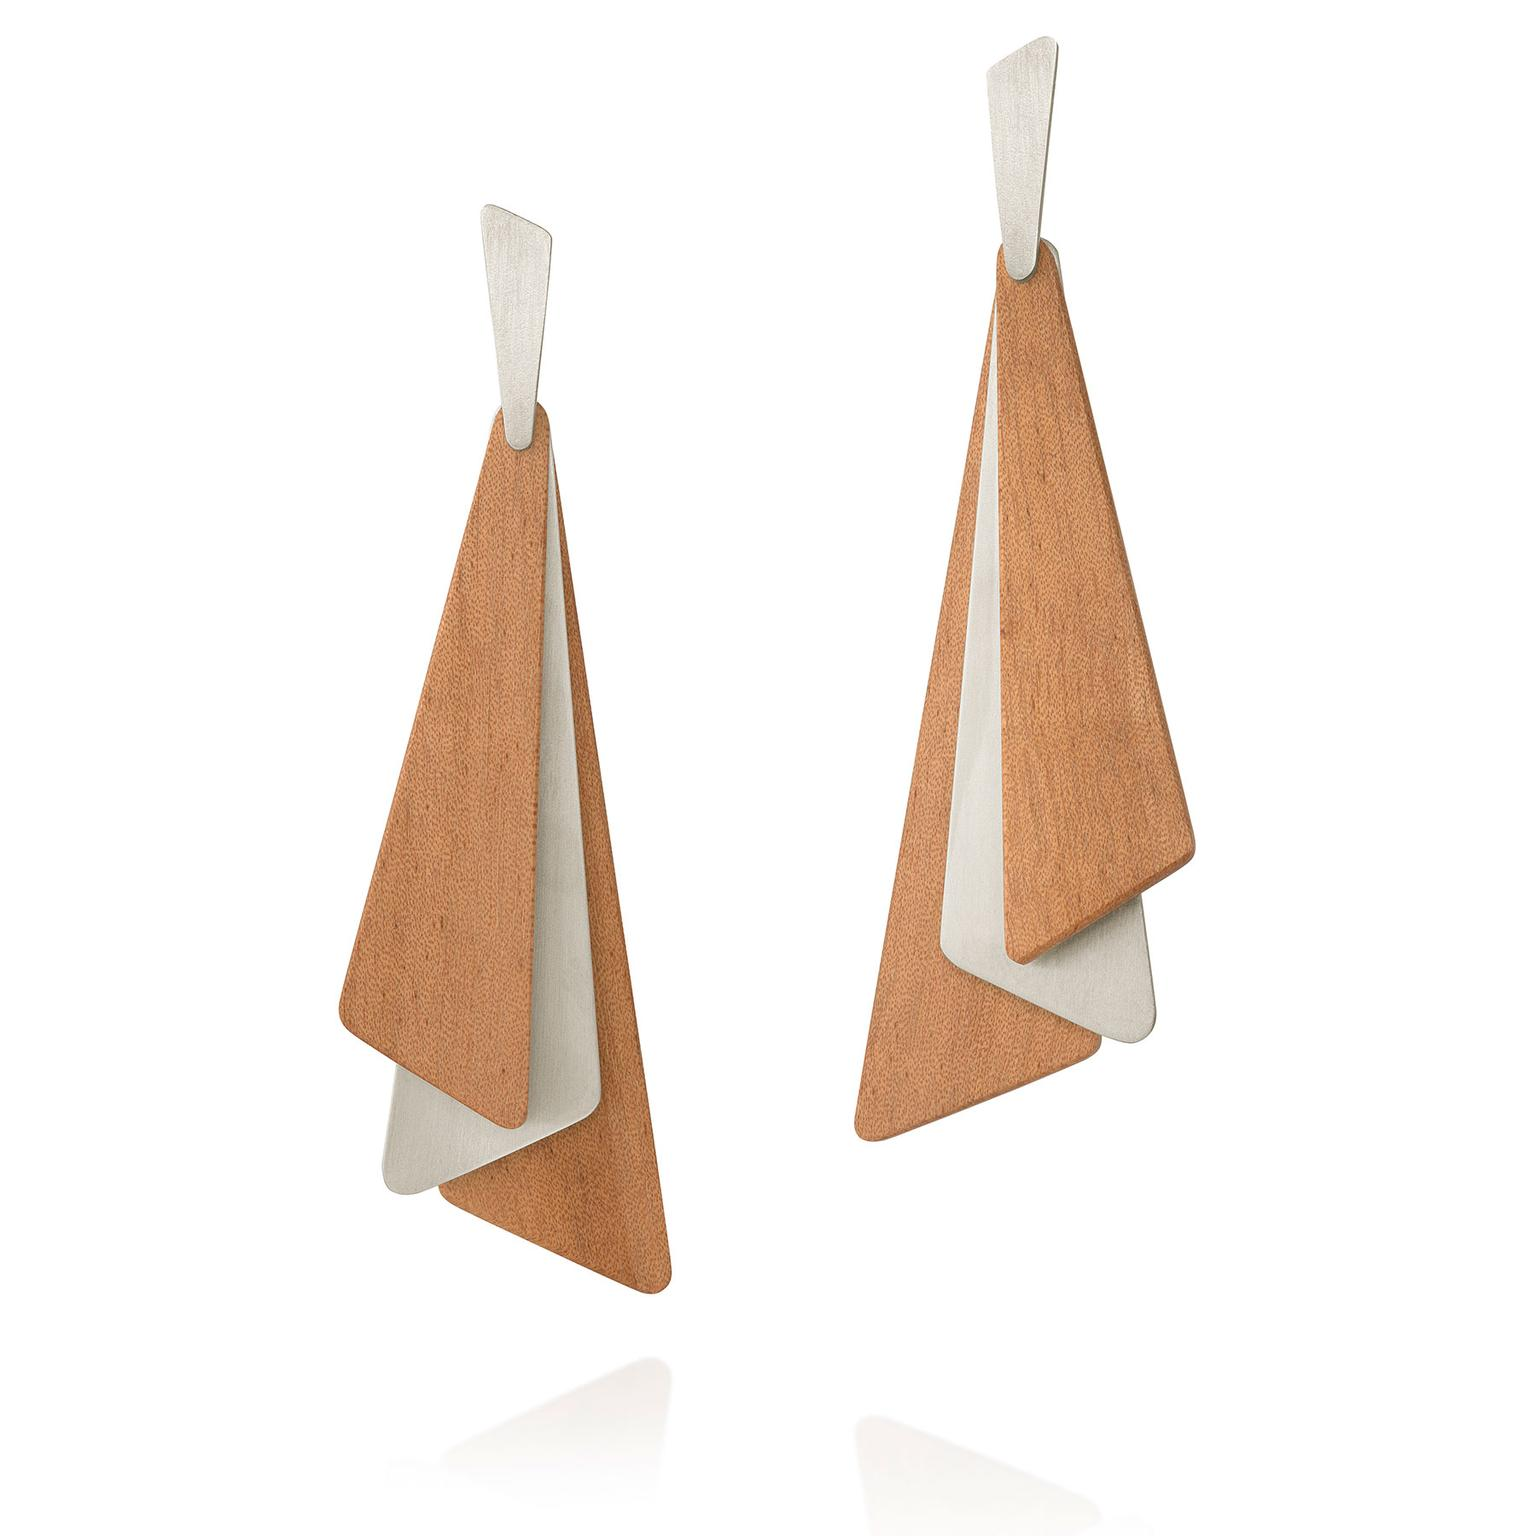 Denise Queiroz Libertat silver and wood earrings